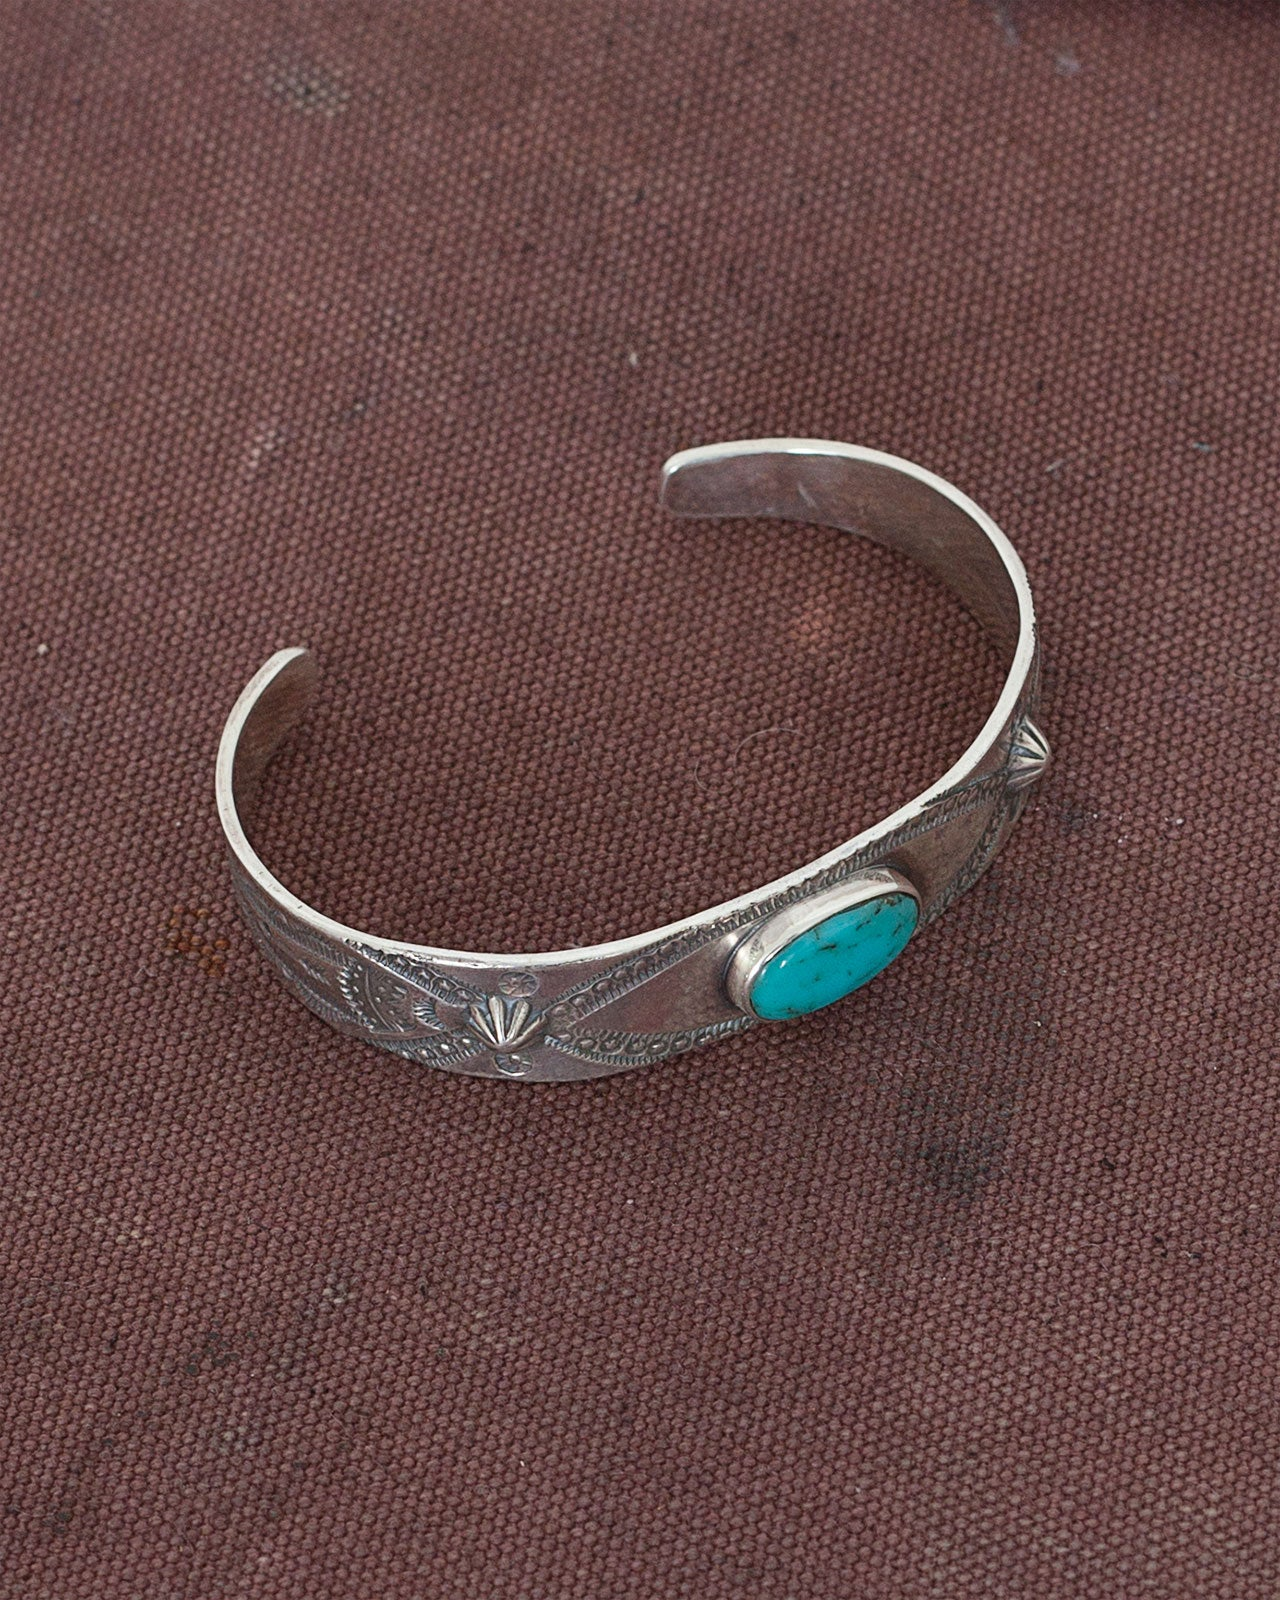 Larry Smith Oval Turquoise Bracelet